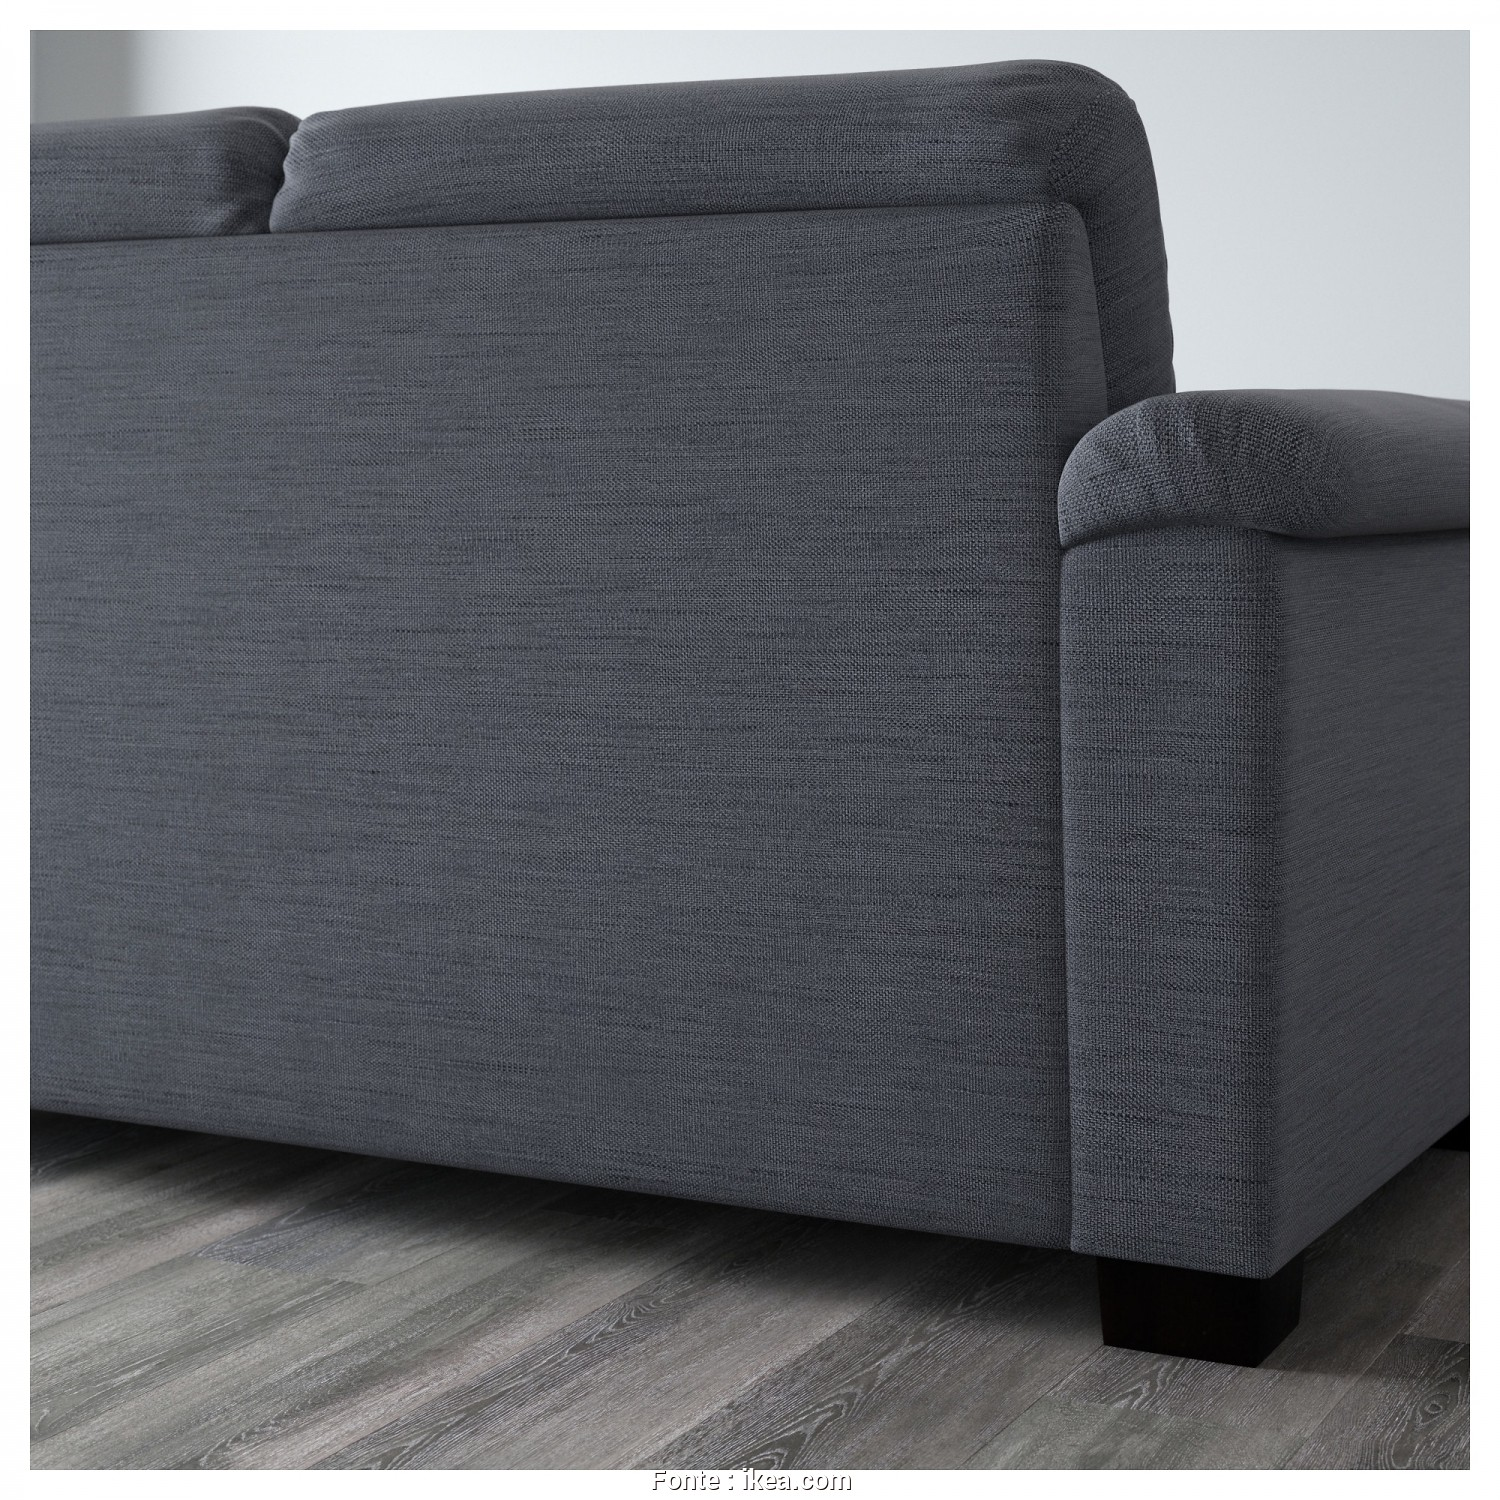 Divano Ikea Tidafors, Rustico IKEA TIDAFORS Corner Sofa With, Right, High Back Gives Good Support, Your Neck